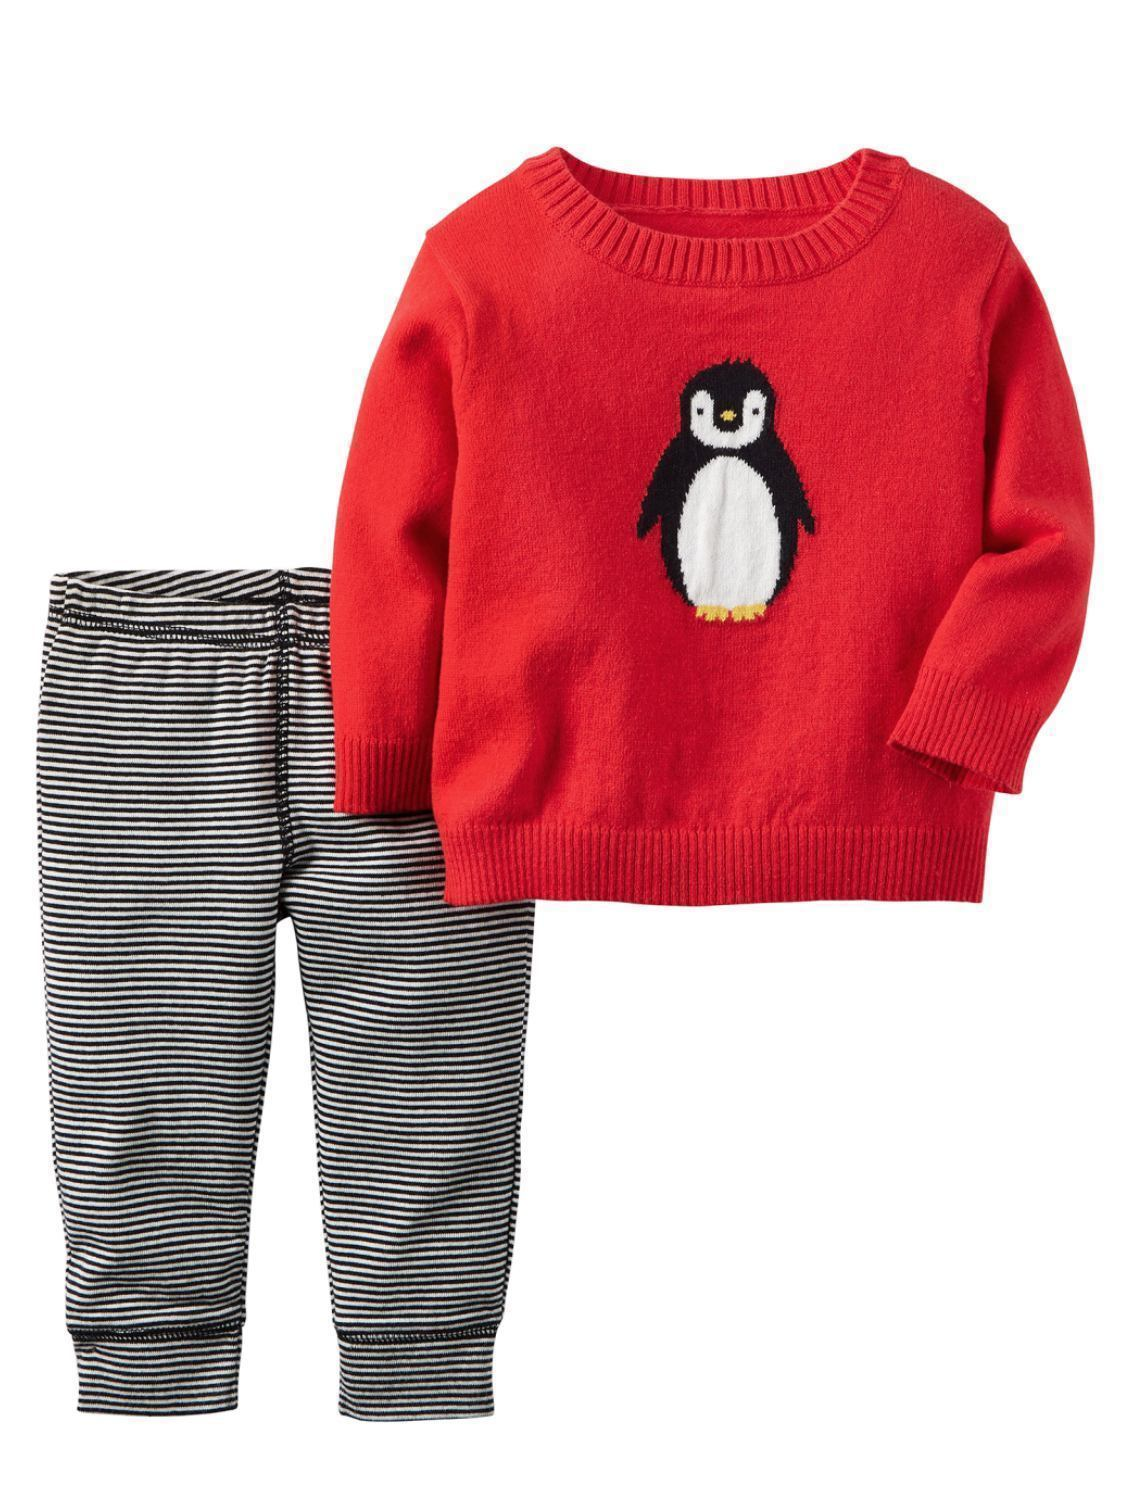 Carters Infant Boys 2-Piece Red Penguin Sweater & Striped Pant Set